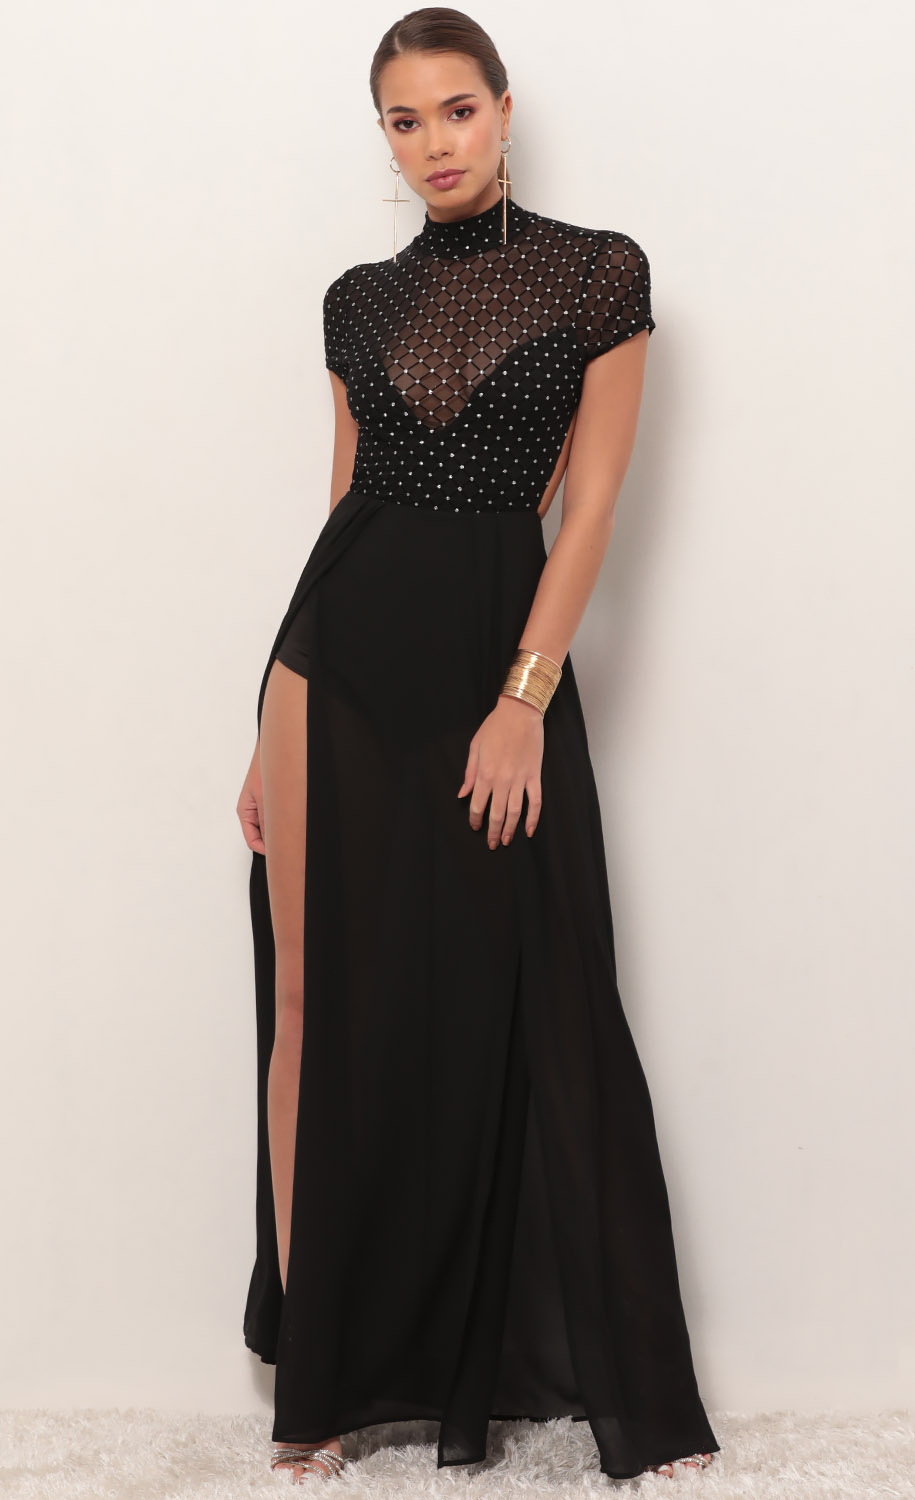 Couture Black Diamond Mesh Maxi Dress